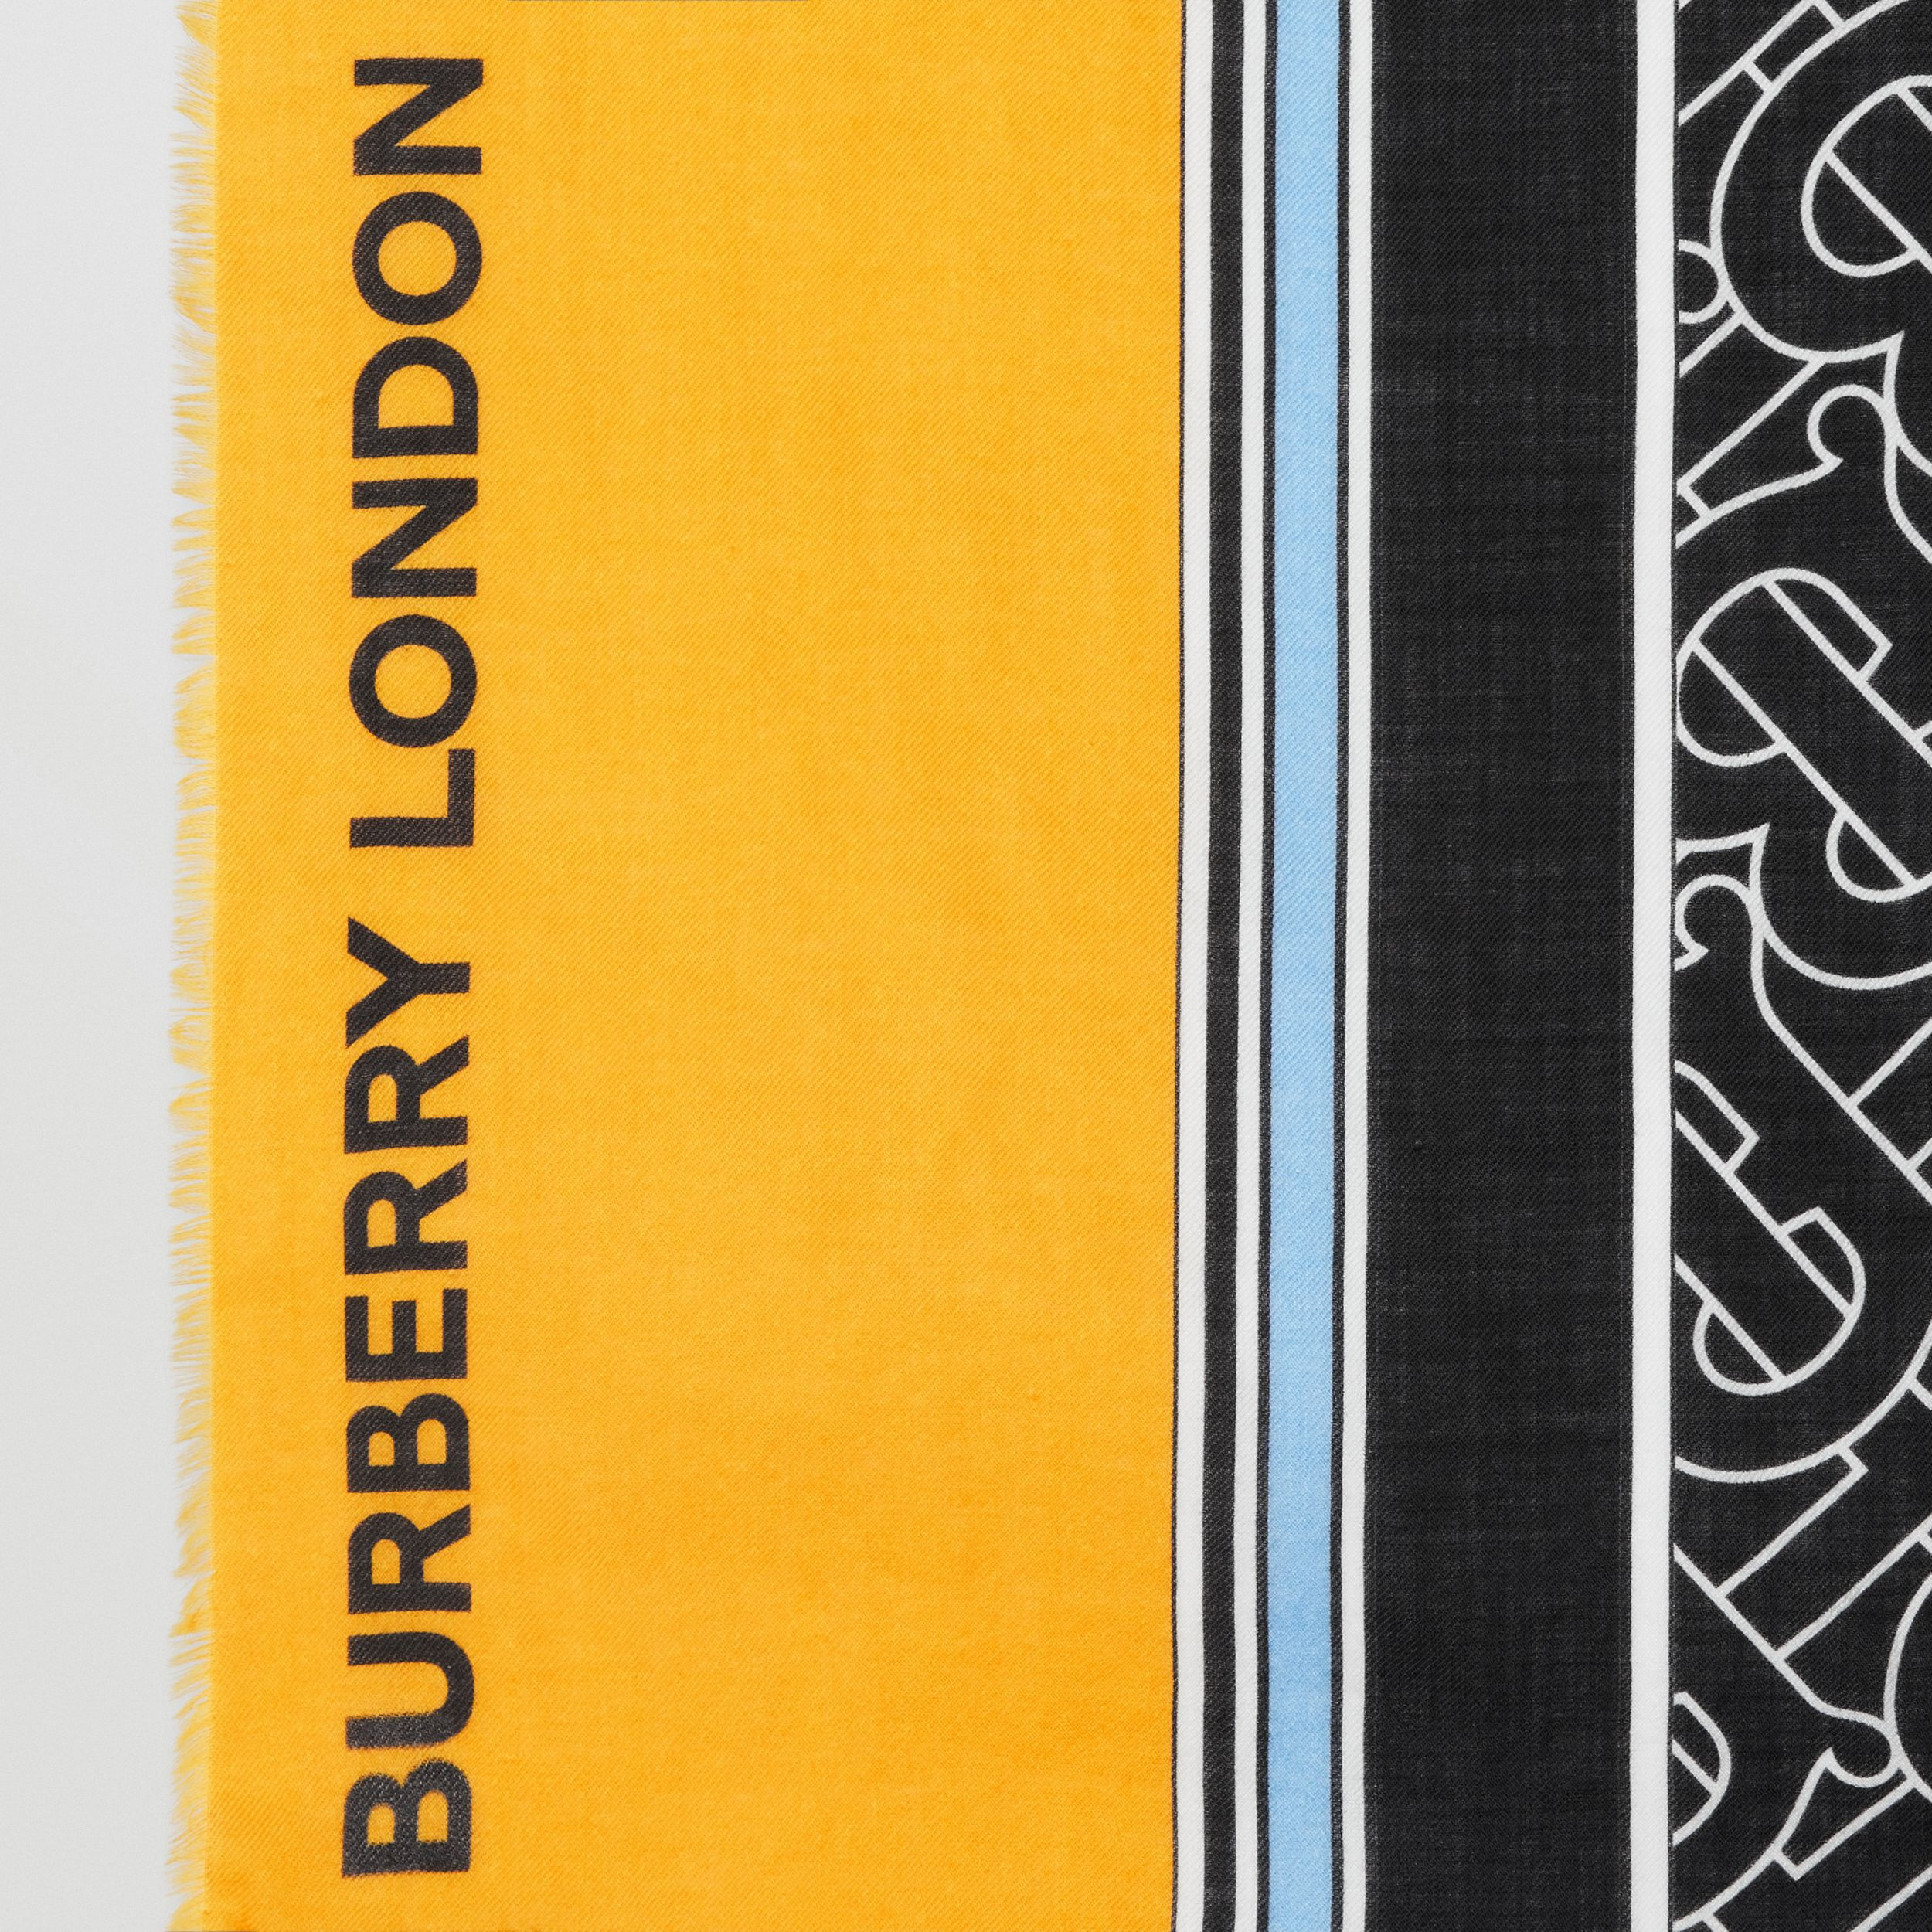 Monogram Print Striped Lightweight Cashmere Scarf in Citrus Yellow | Burberry - 2